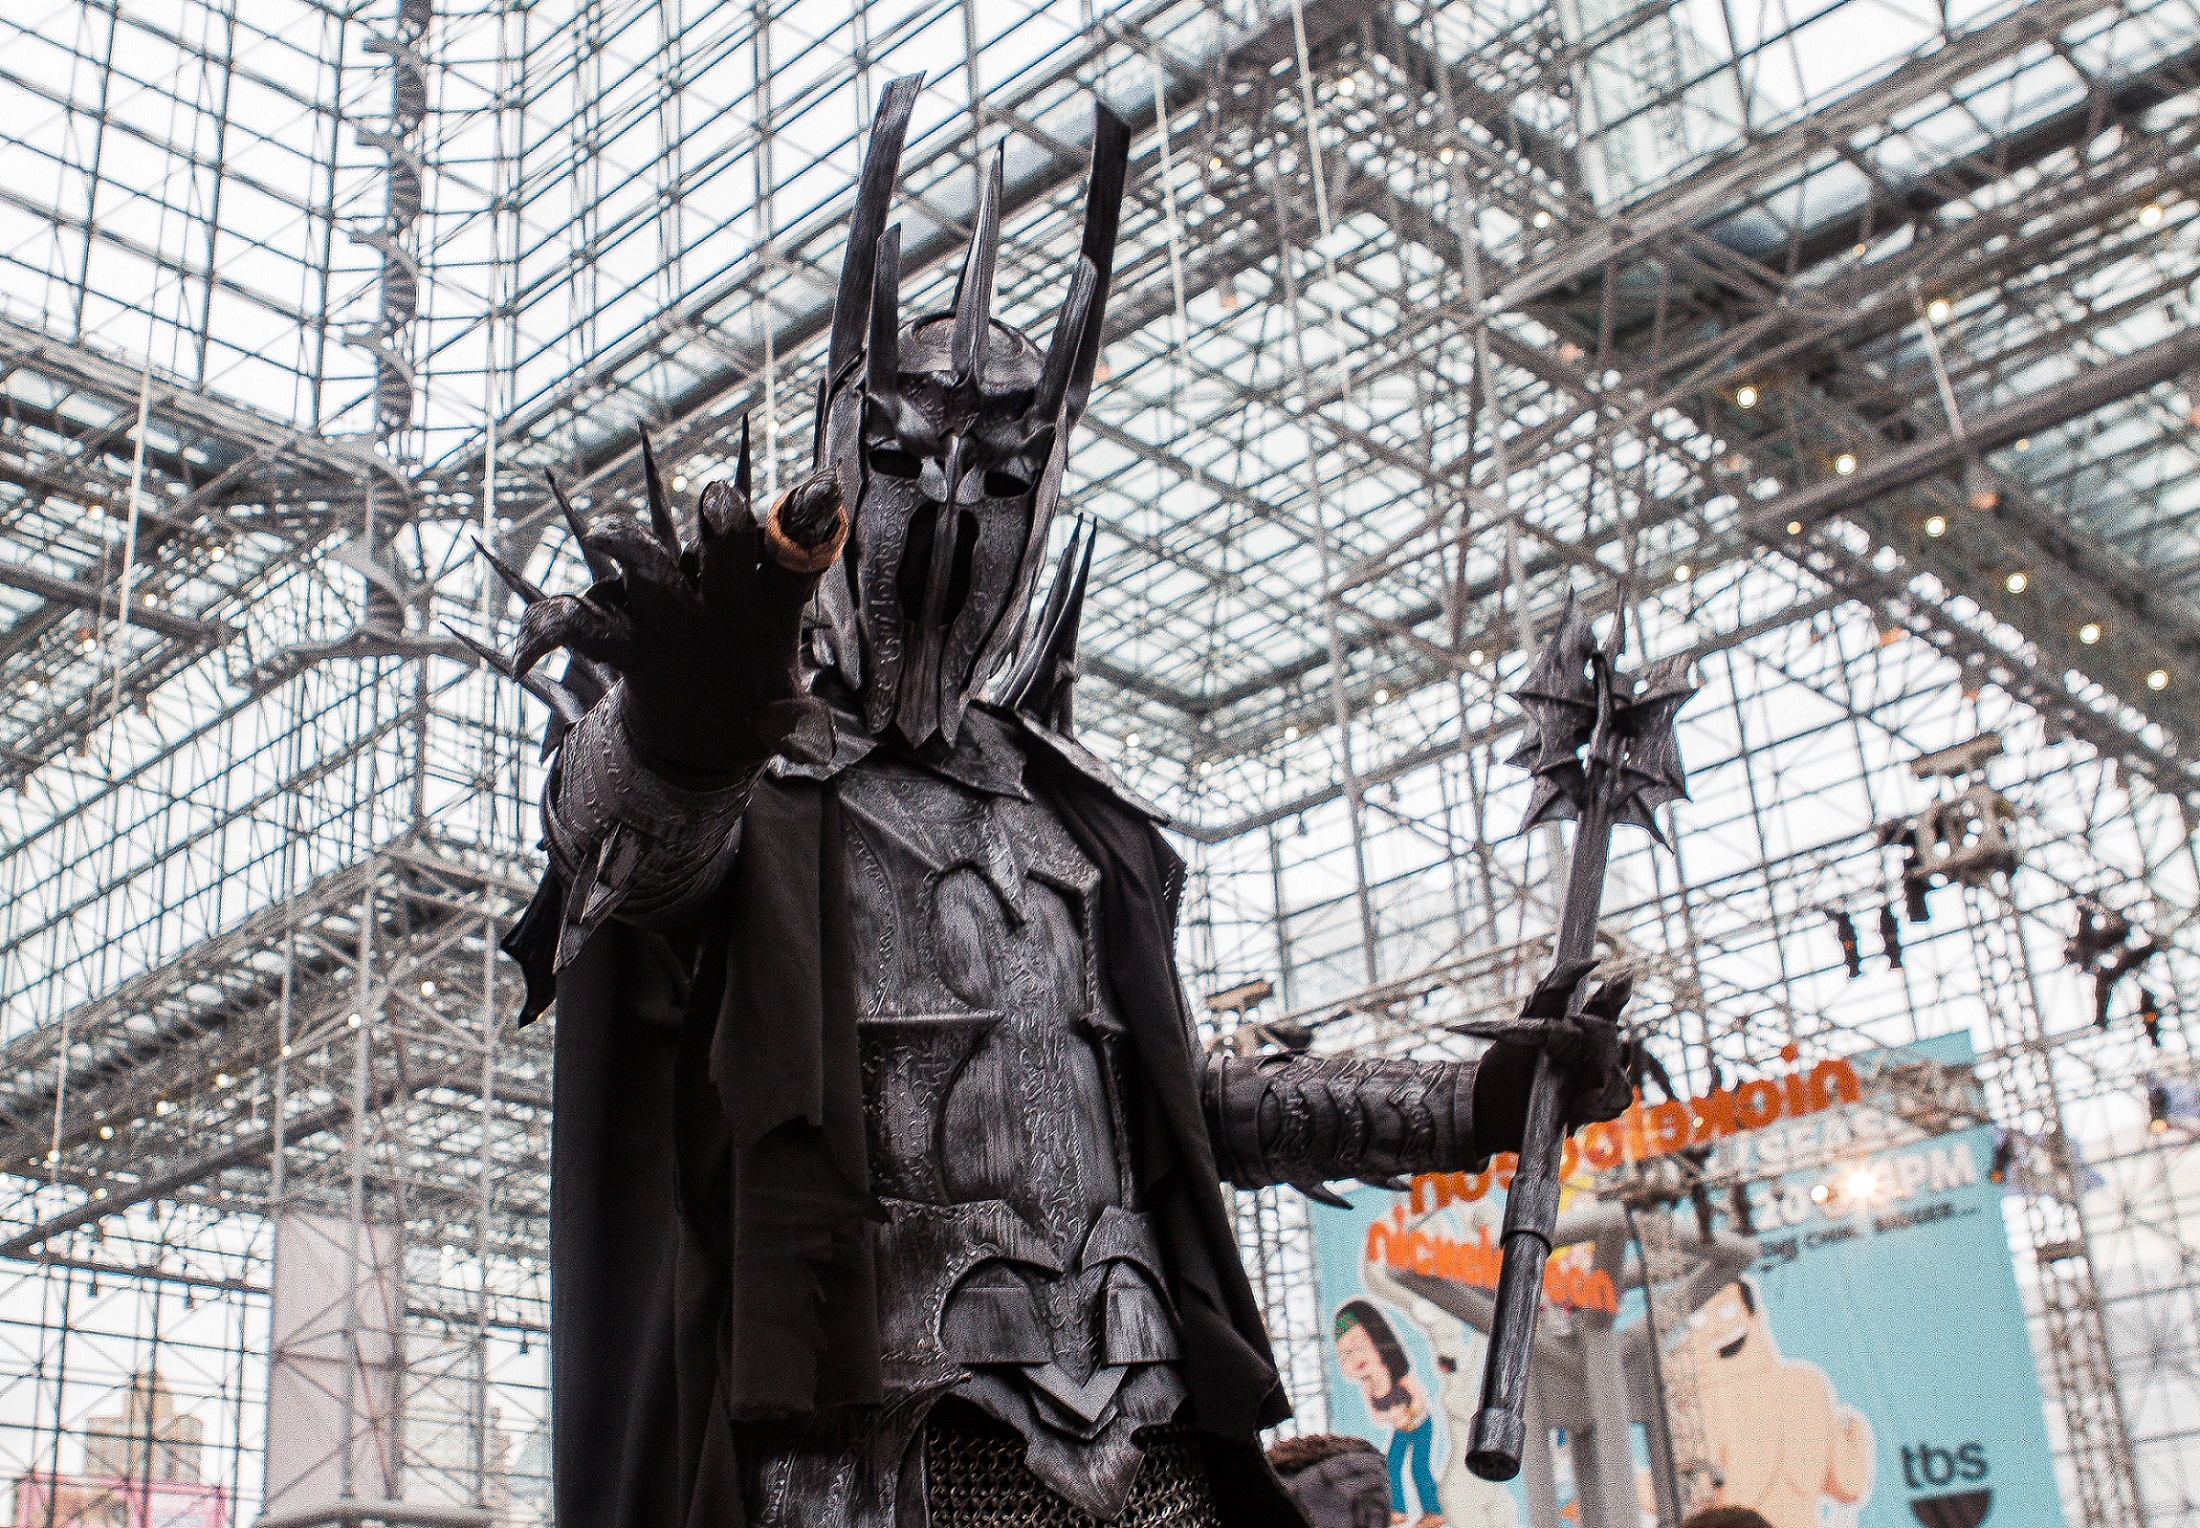 NYCC 2014: SideQuesting's Cosplay Gallery